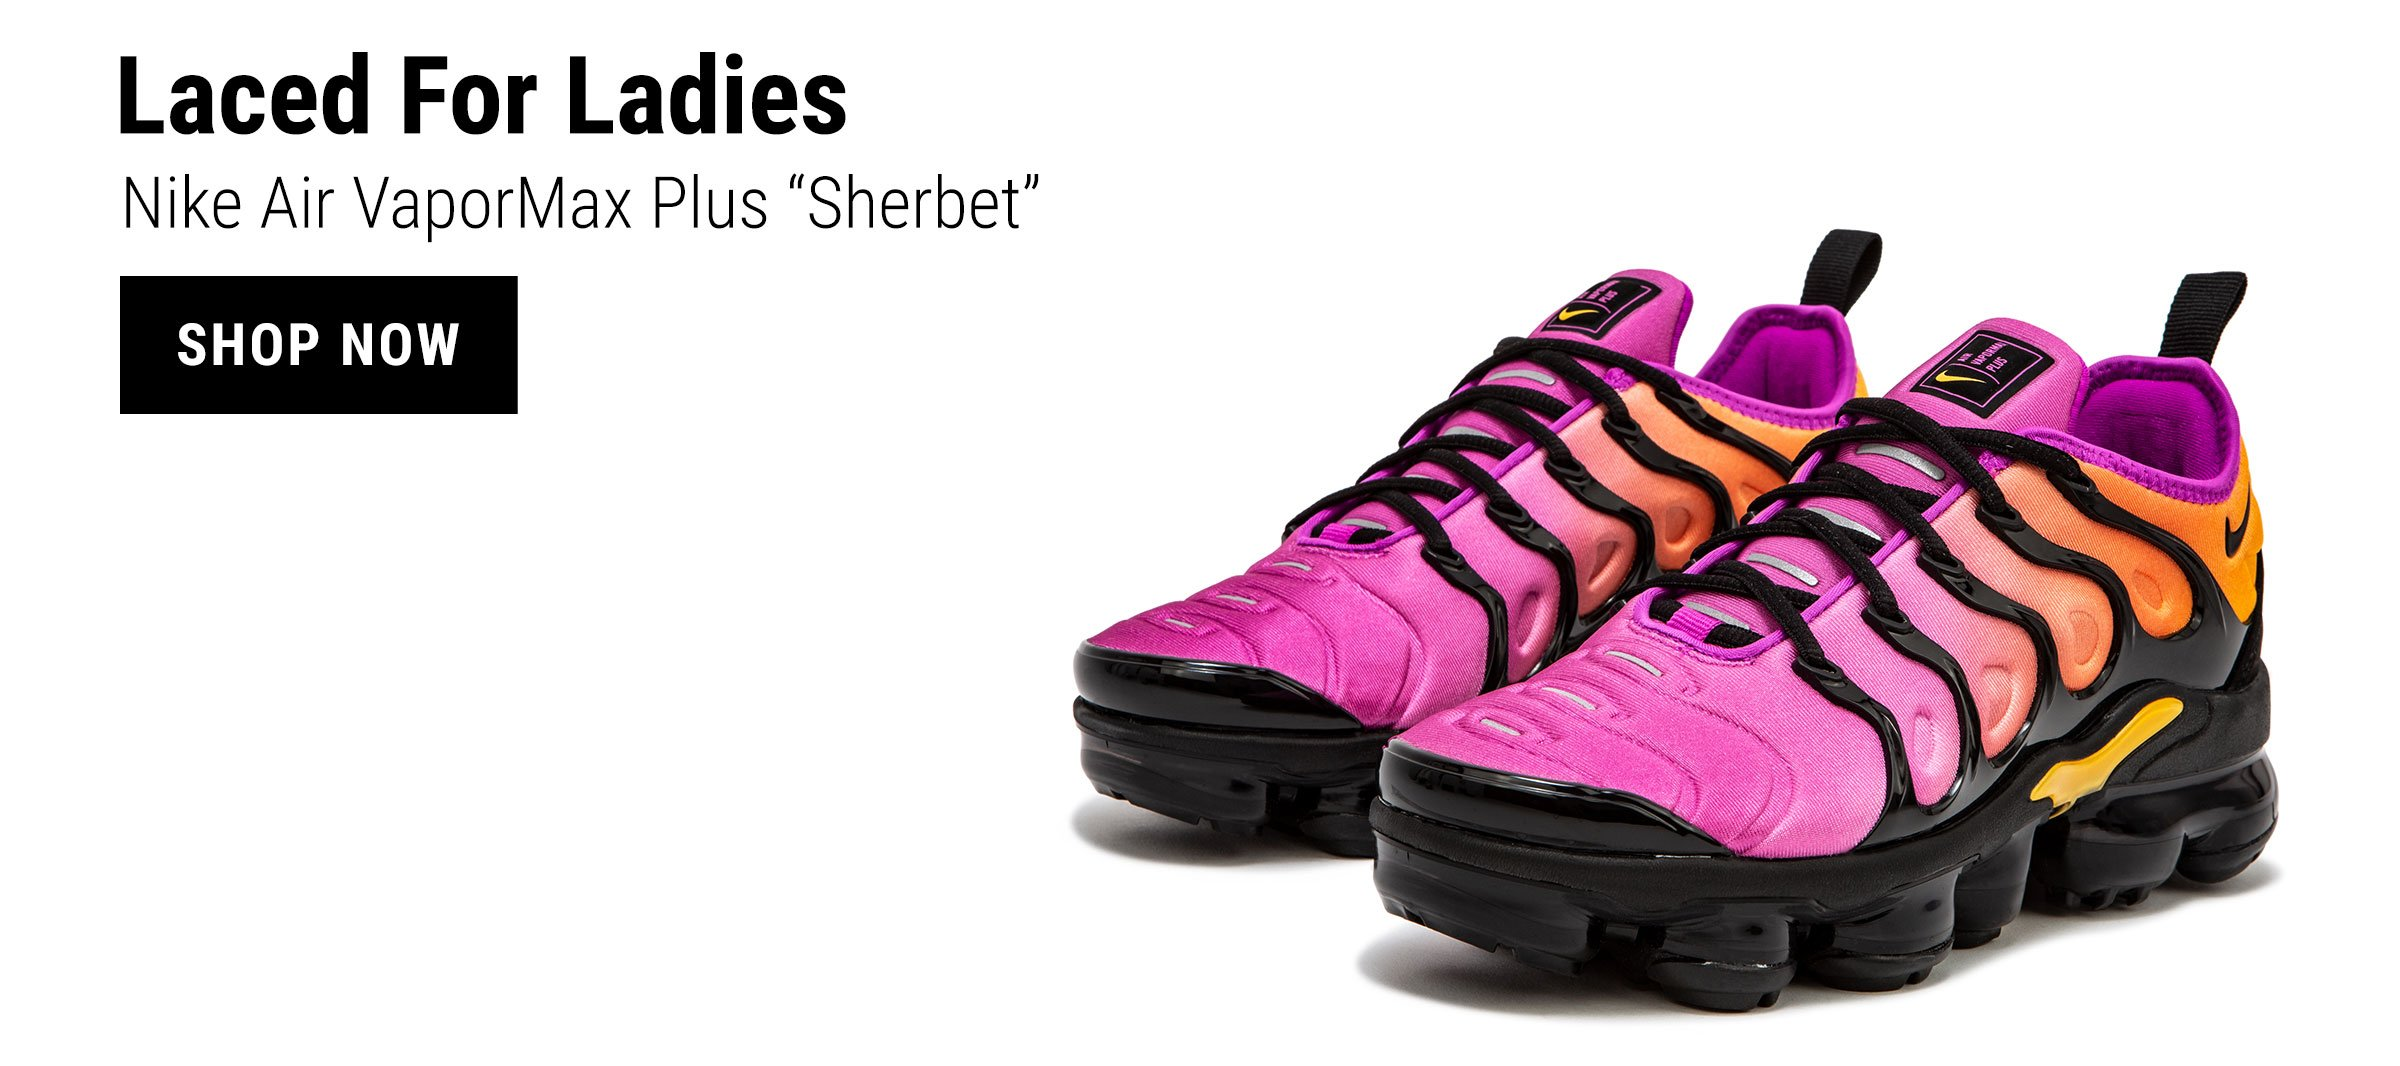 5cdac7a0e9255 Shop the latest and greatest in women s styles feat. the New Nike ...